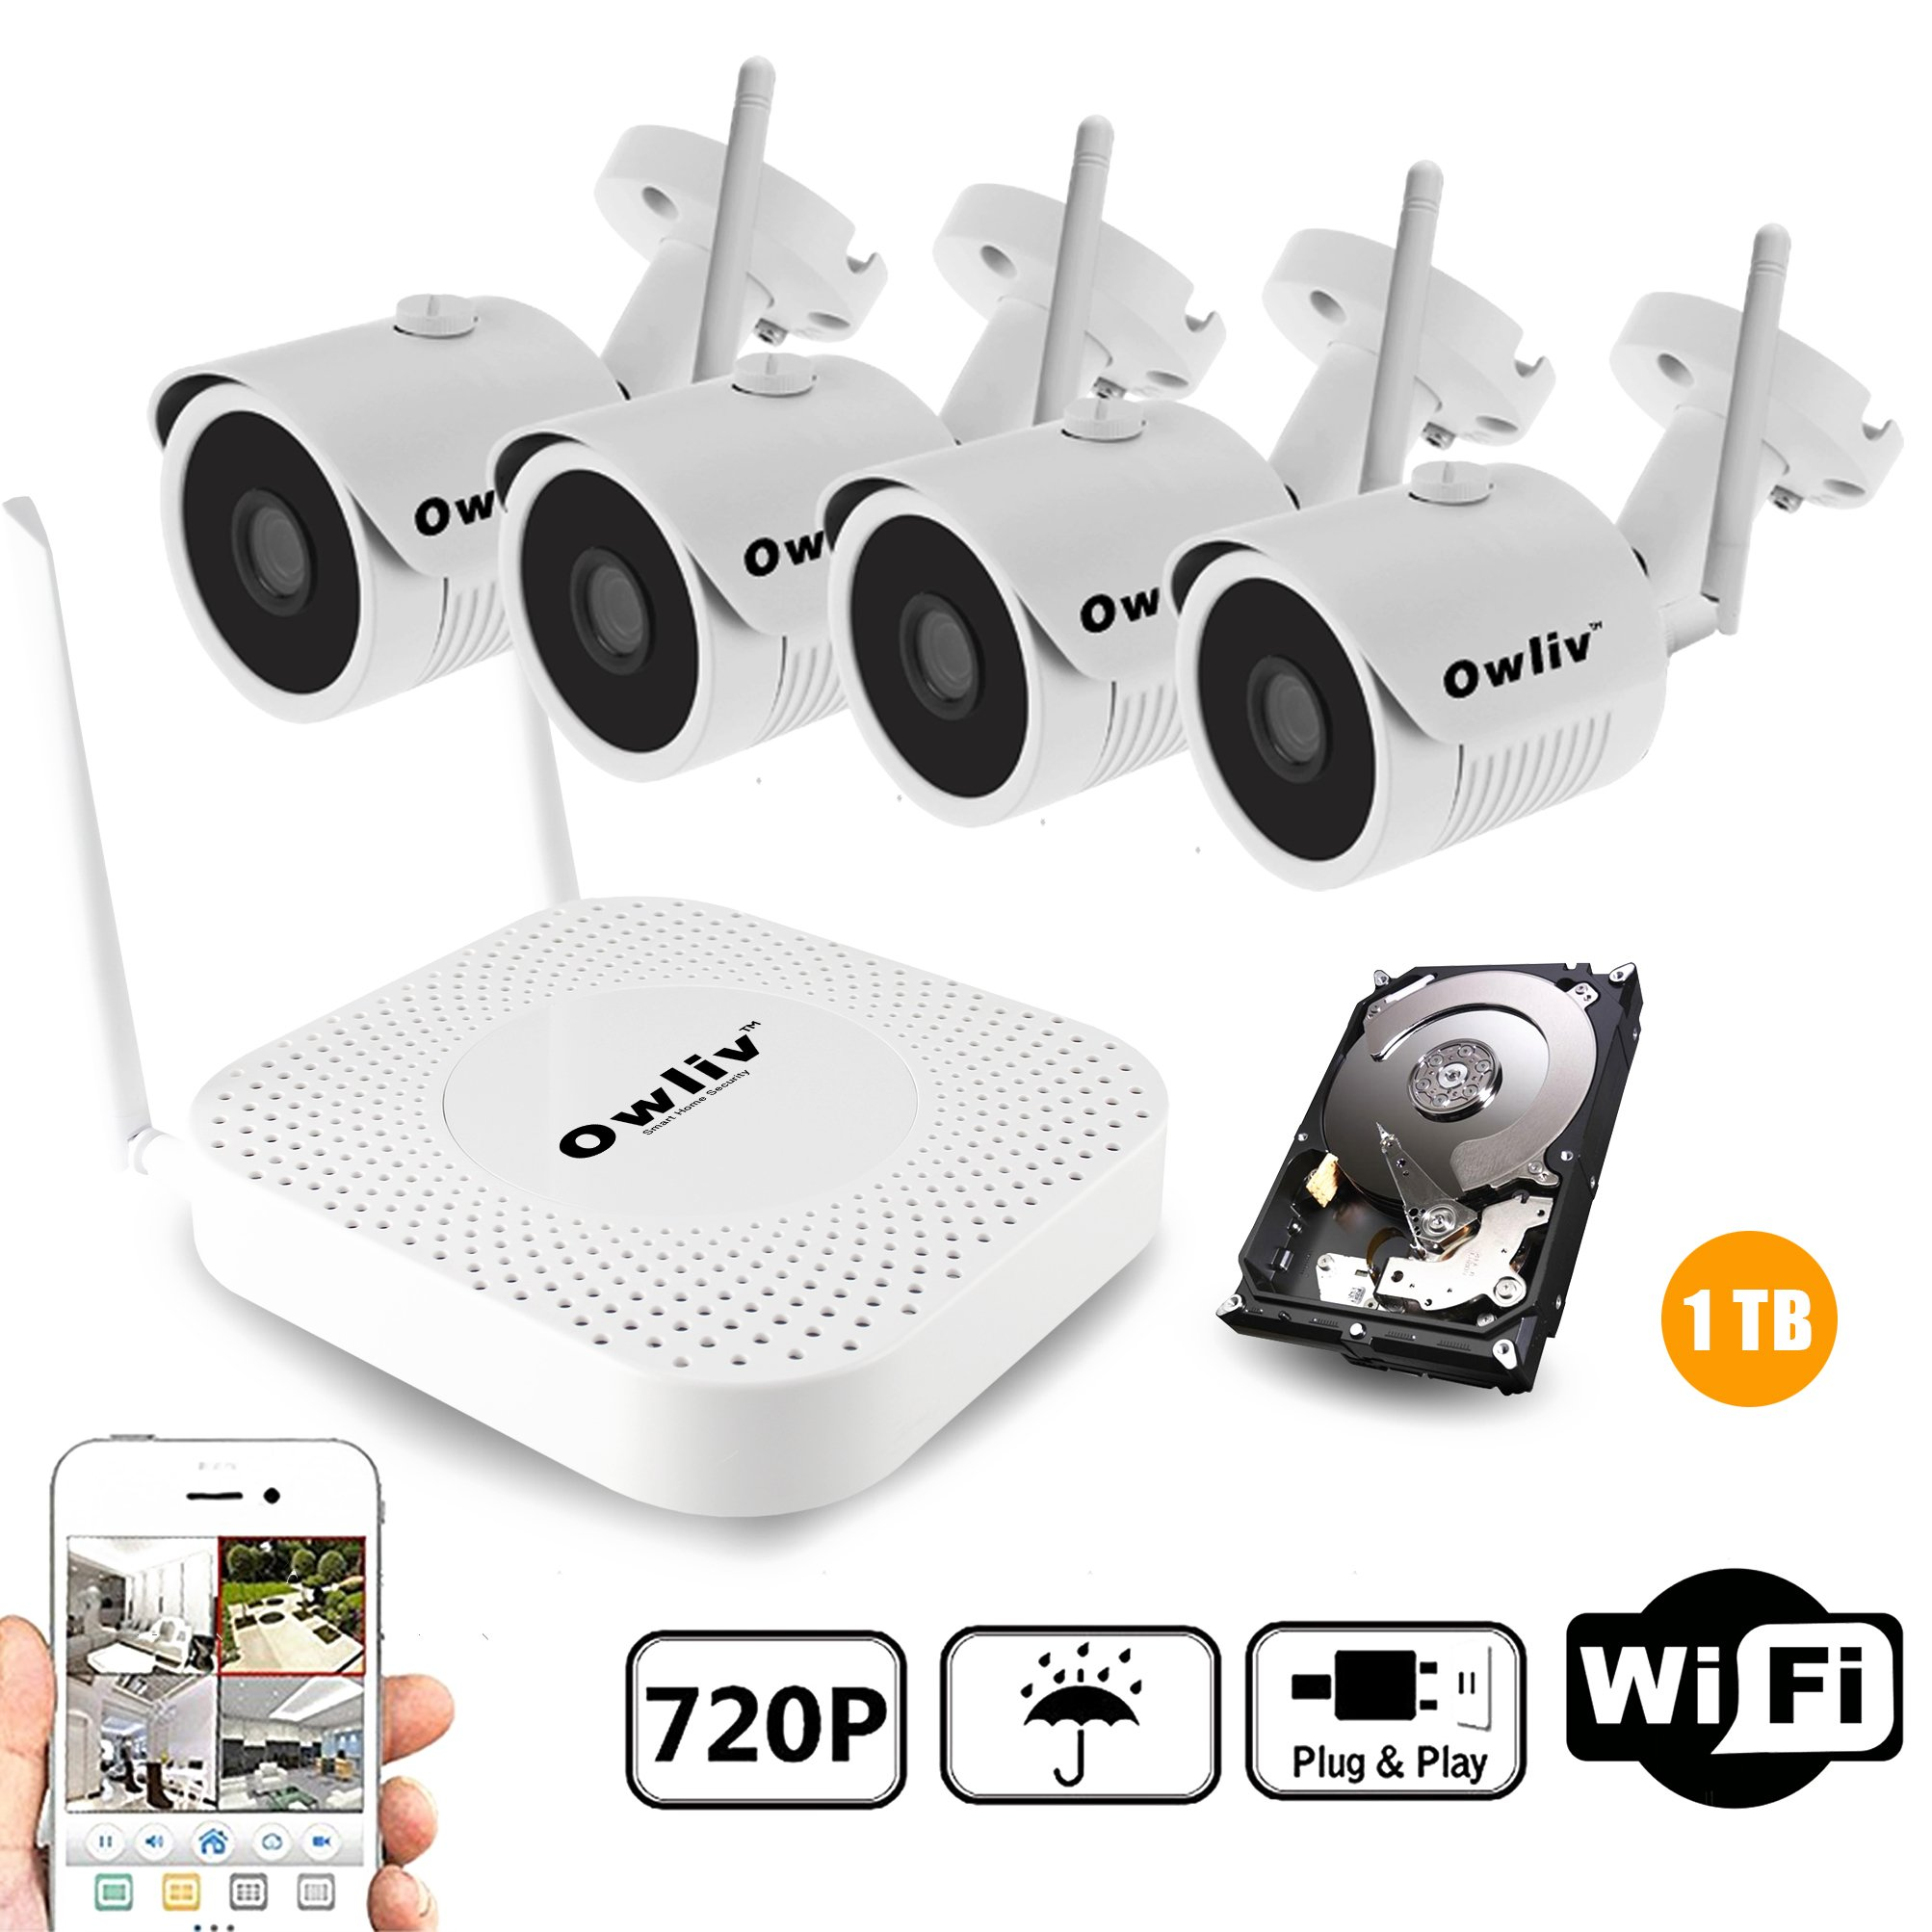 OWLIV 720P 1.0MP + 1TB Hard Disk Smart WIFI IP Camera System 4CH Kit Indoor/Outdoor Waterproof Night Vision HD Wireless Video Surveillance With 1TB Hard Drive